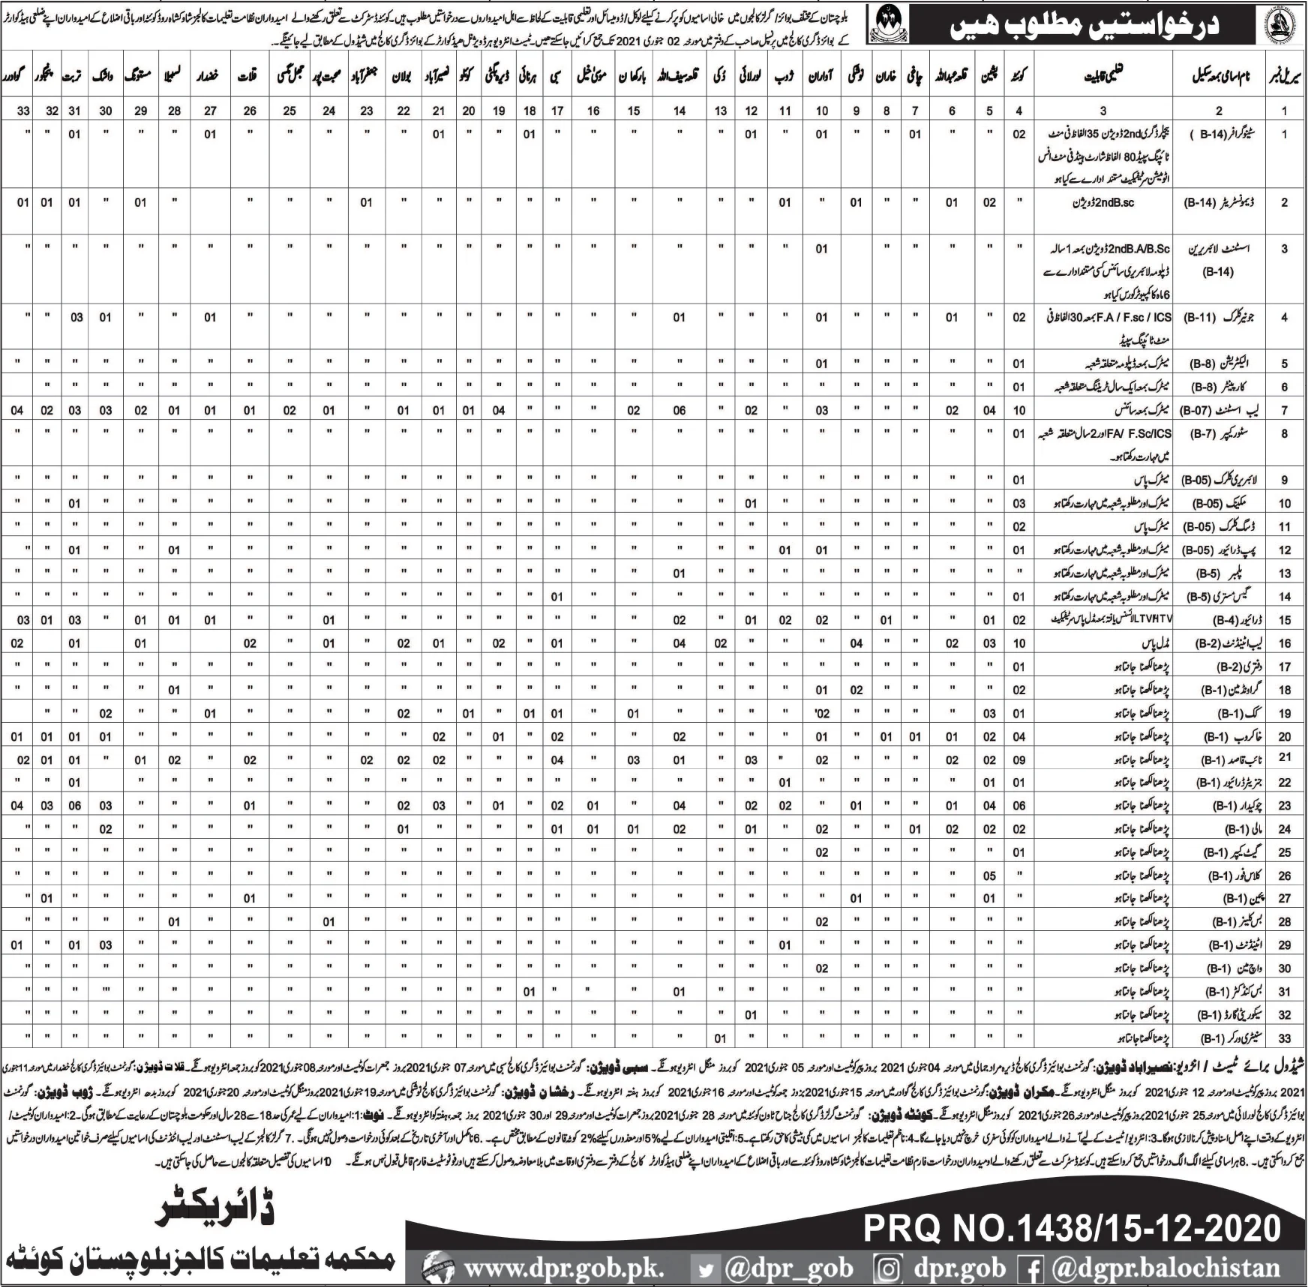 Balochistan Education Department Jobs 2021 Application Form Eligibility Criteria Interview Schedule